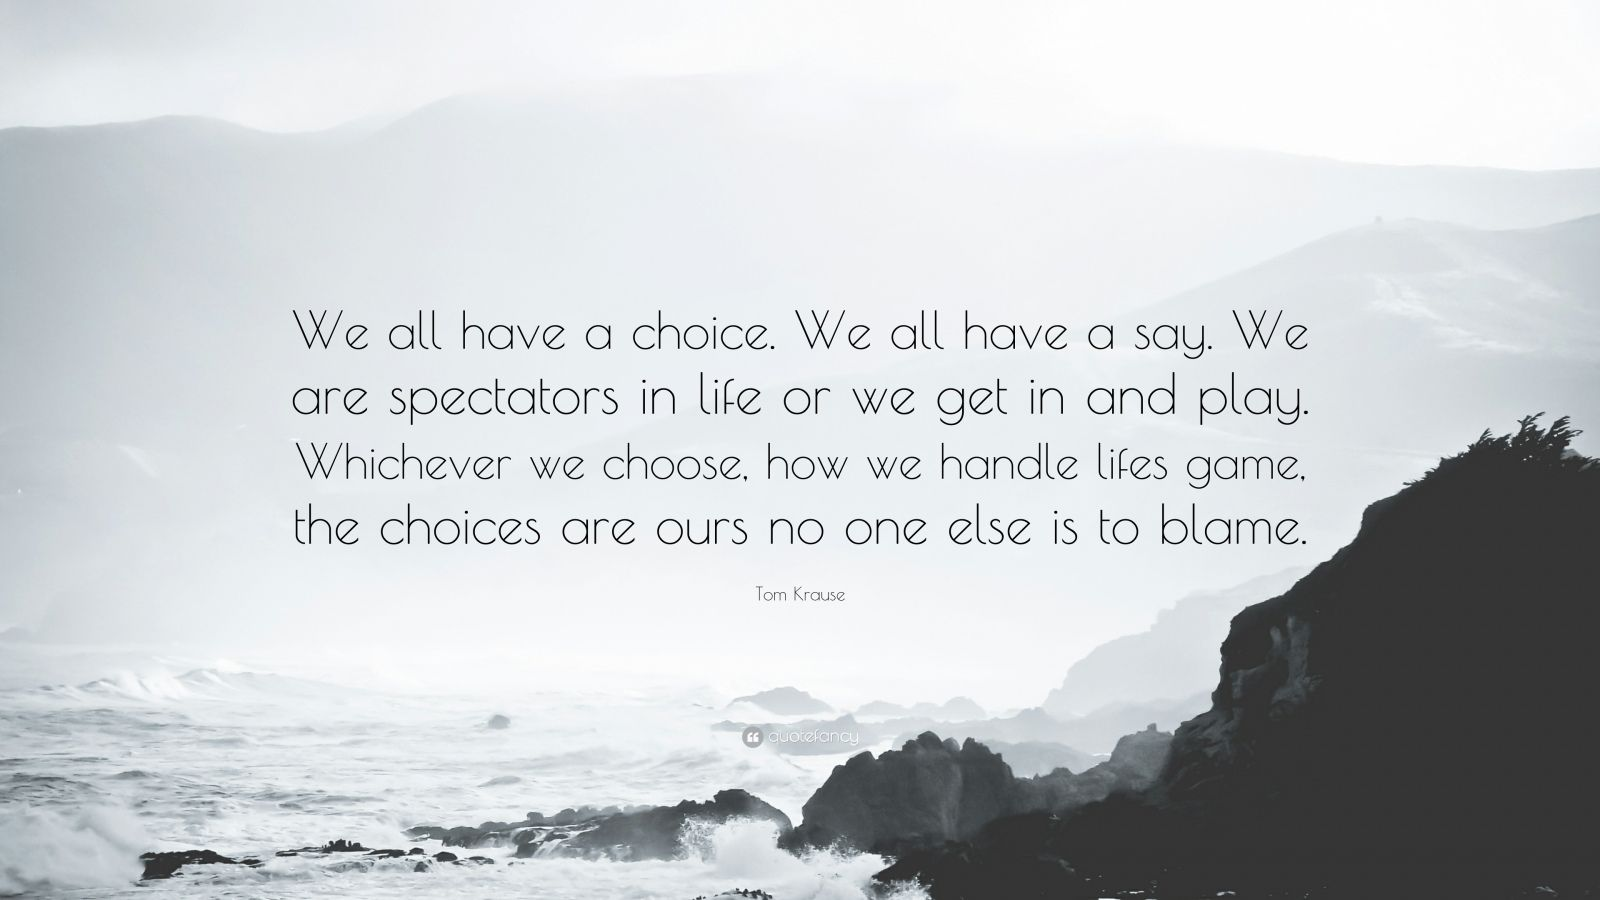 """Tom Krause Quote: """"We all have a choice. We all have a say. We are spectators in life or we get in and play. Whichever we choose, how we handle lifes game, the choices are ours no one else is to blame."""""""